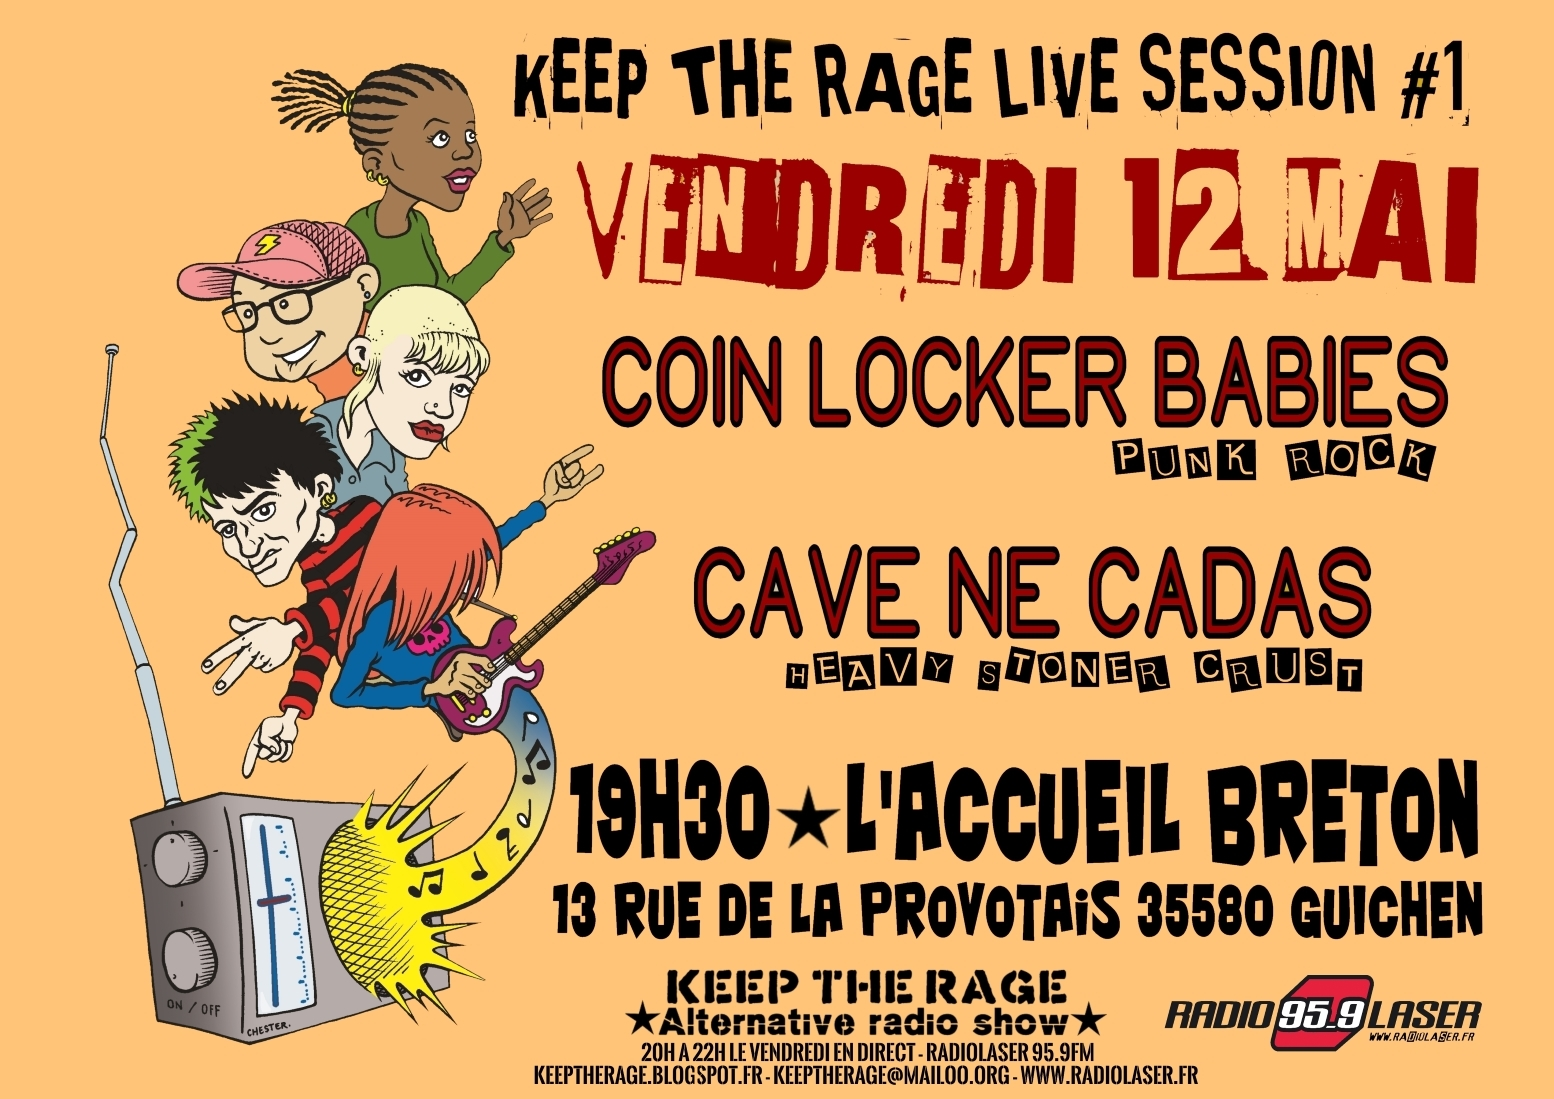 Keep The Rage #216 - Vendredi 12 mai - Keep The Rage live session #1